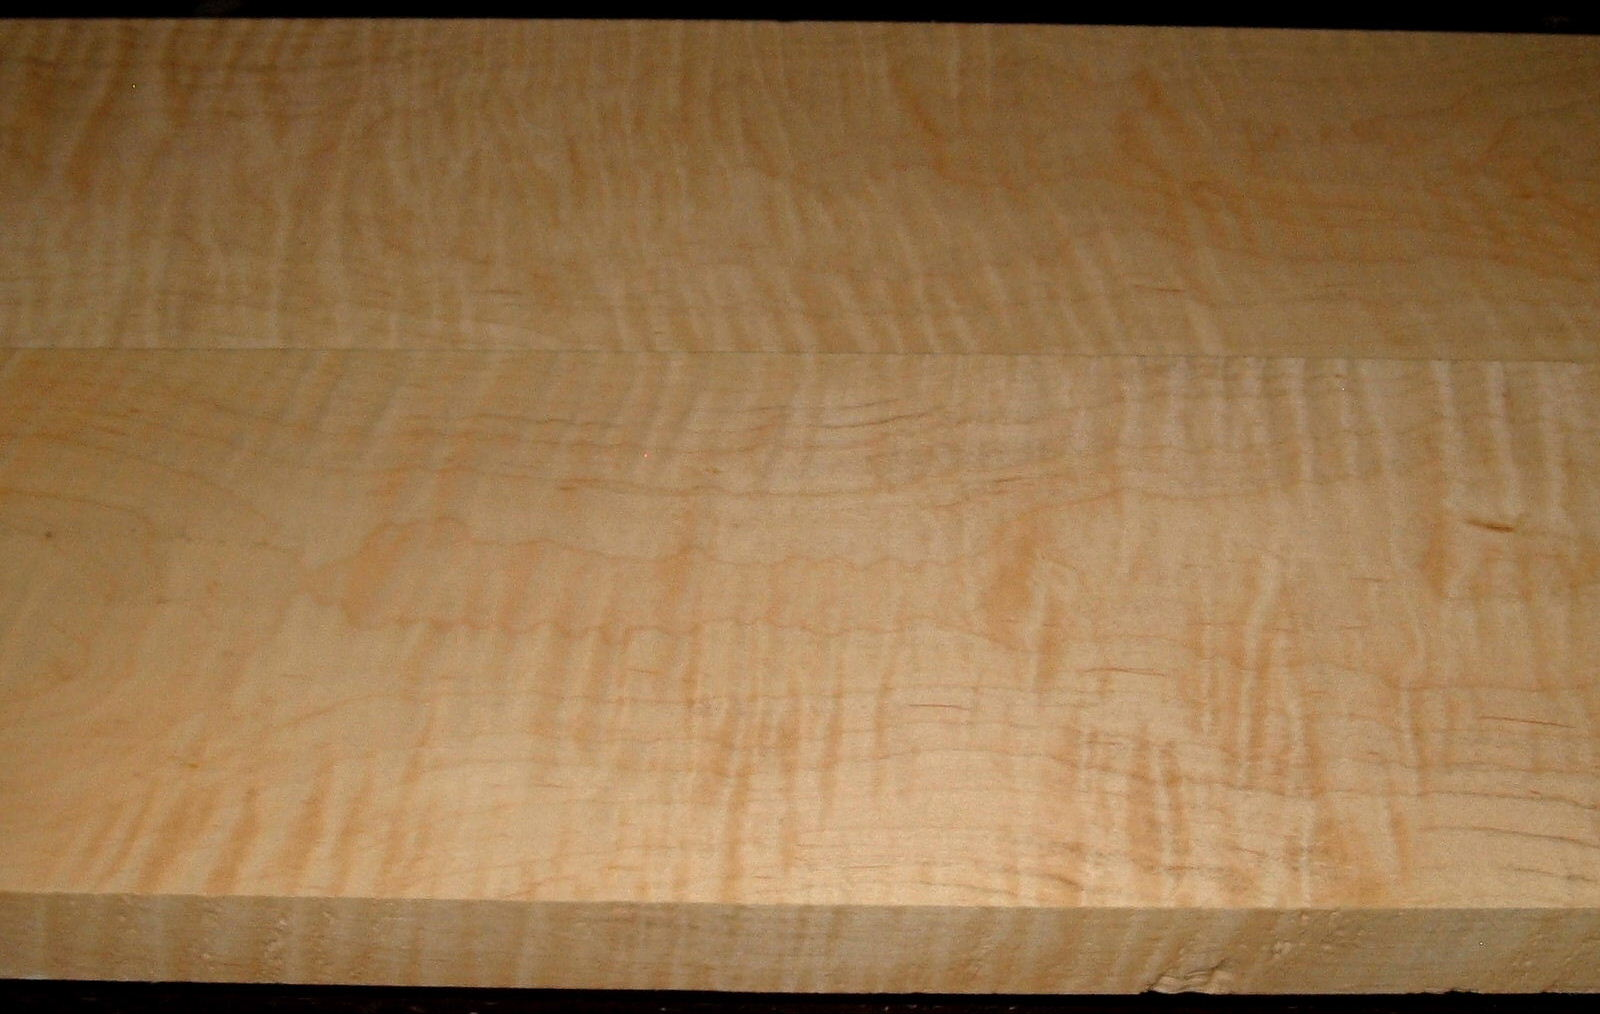 M2004-353, 2 Bd Set, 1-1/4 x6-1/4x45 ,1-1/4 x6-3/4x45, Curly Tiger Maple, Cut from same Plank